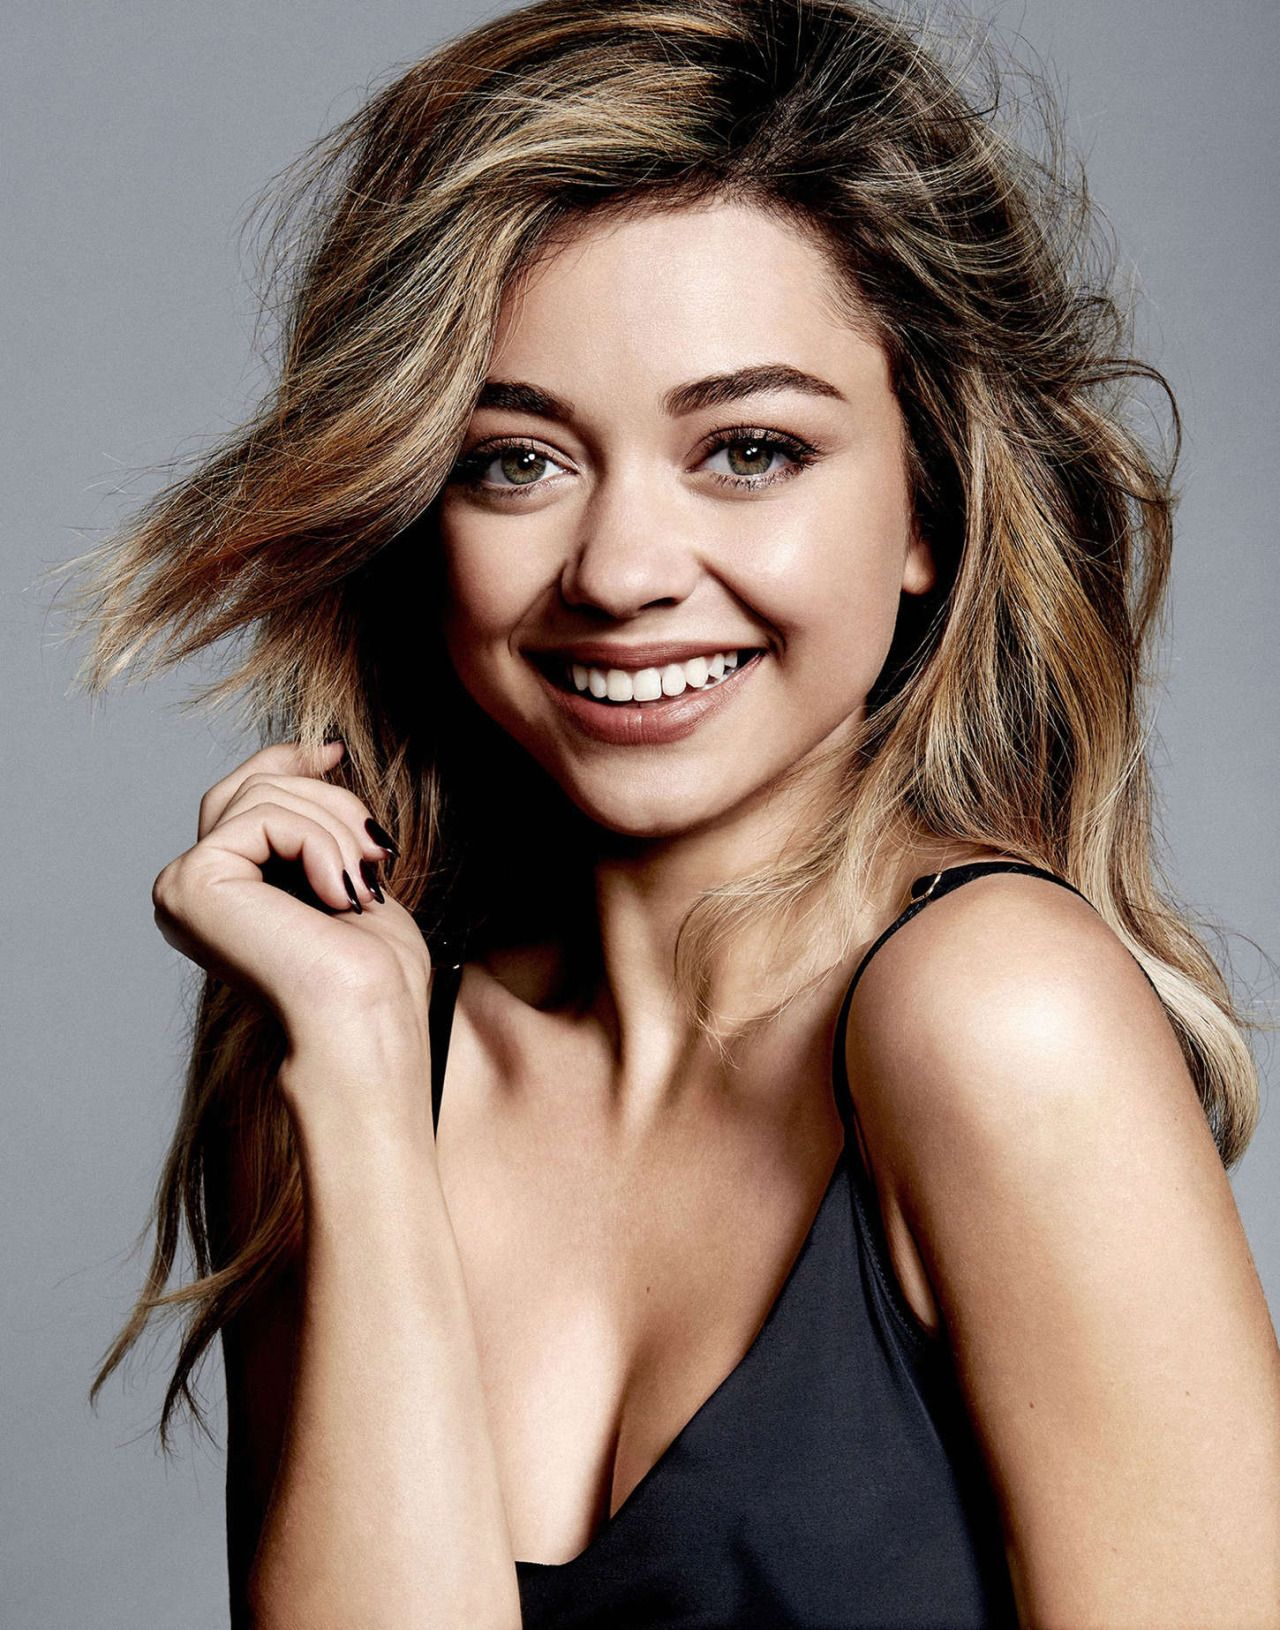 Sarah Hyland sexy clevage